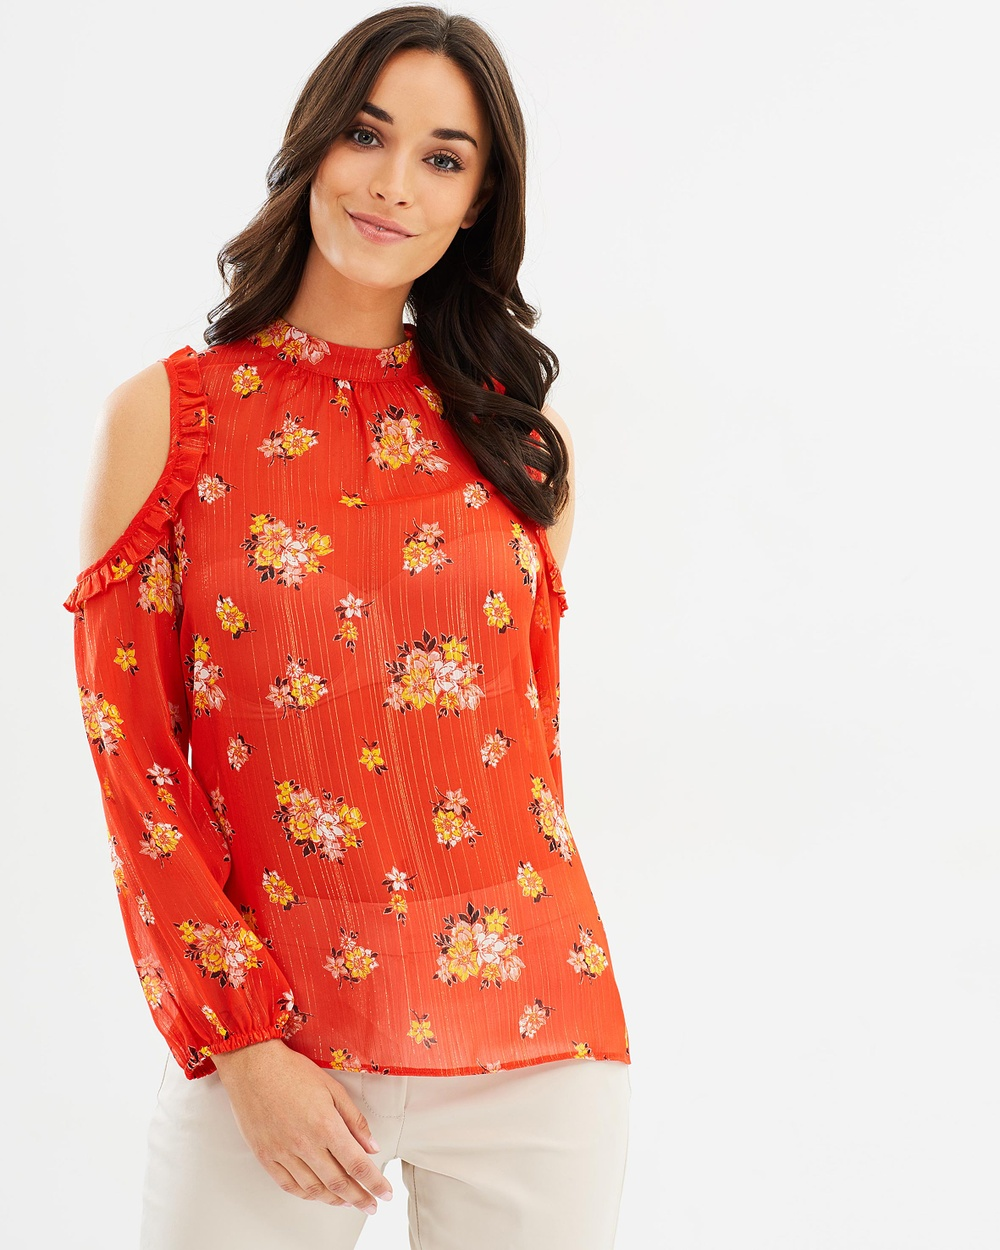 Dorothy Perkins Kate Chiffon Top Tops Red Kate Chiffon Top